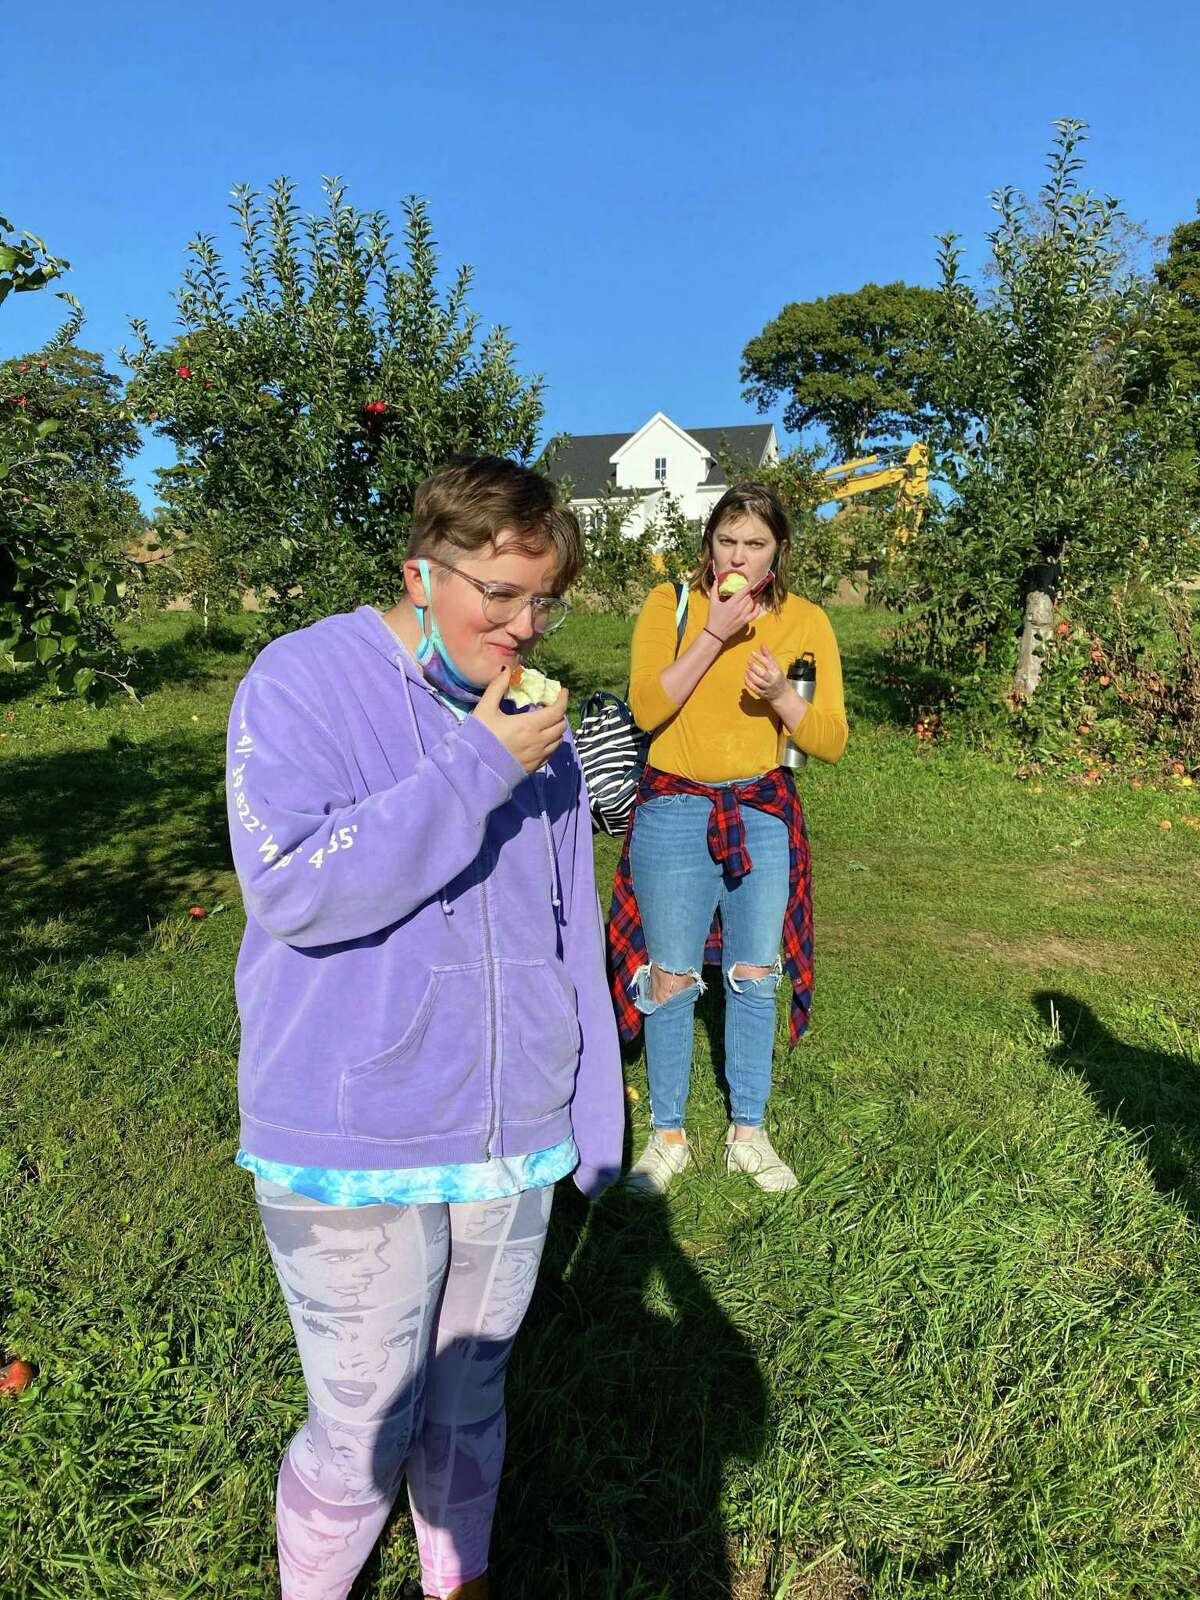 Glenholme students Tia G. and Erika F. stop apple picking for a moment to sample the goods.